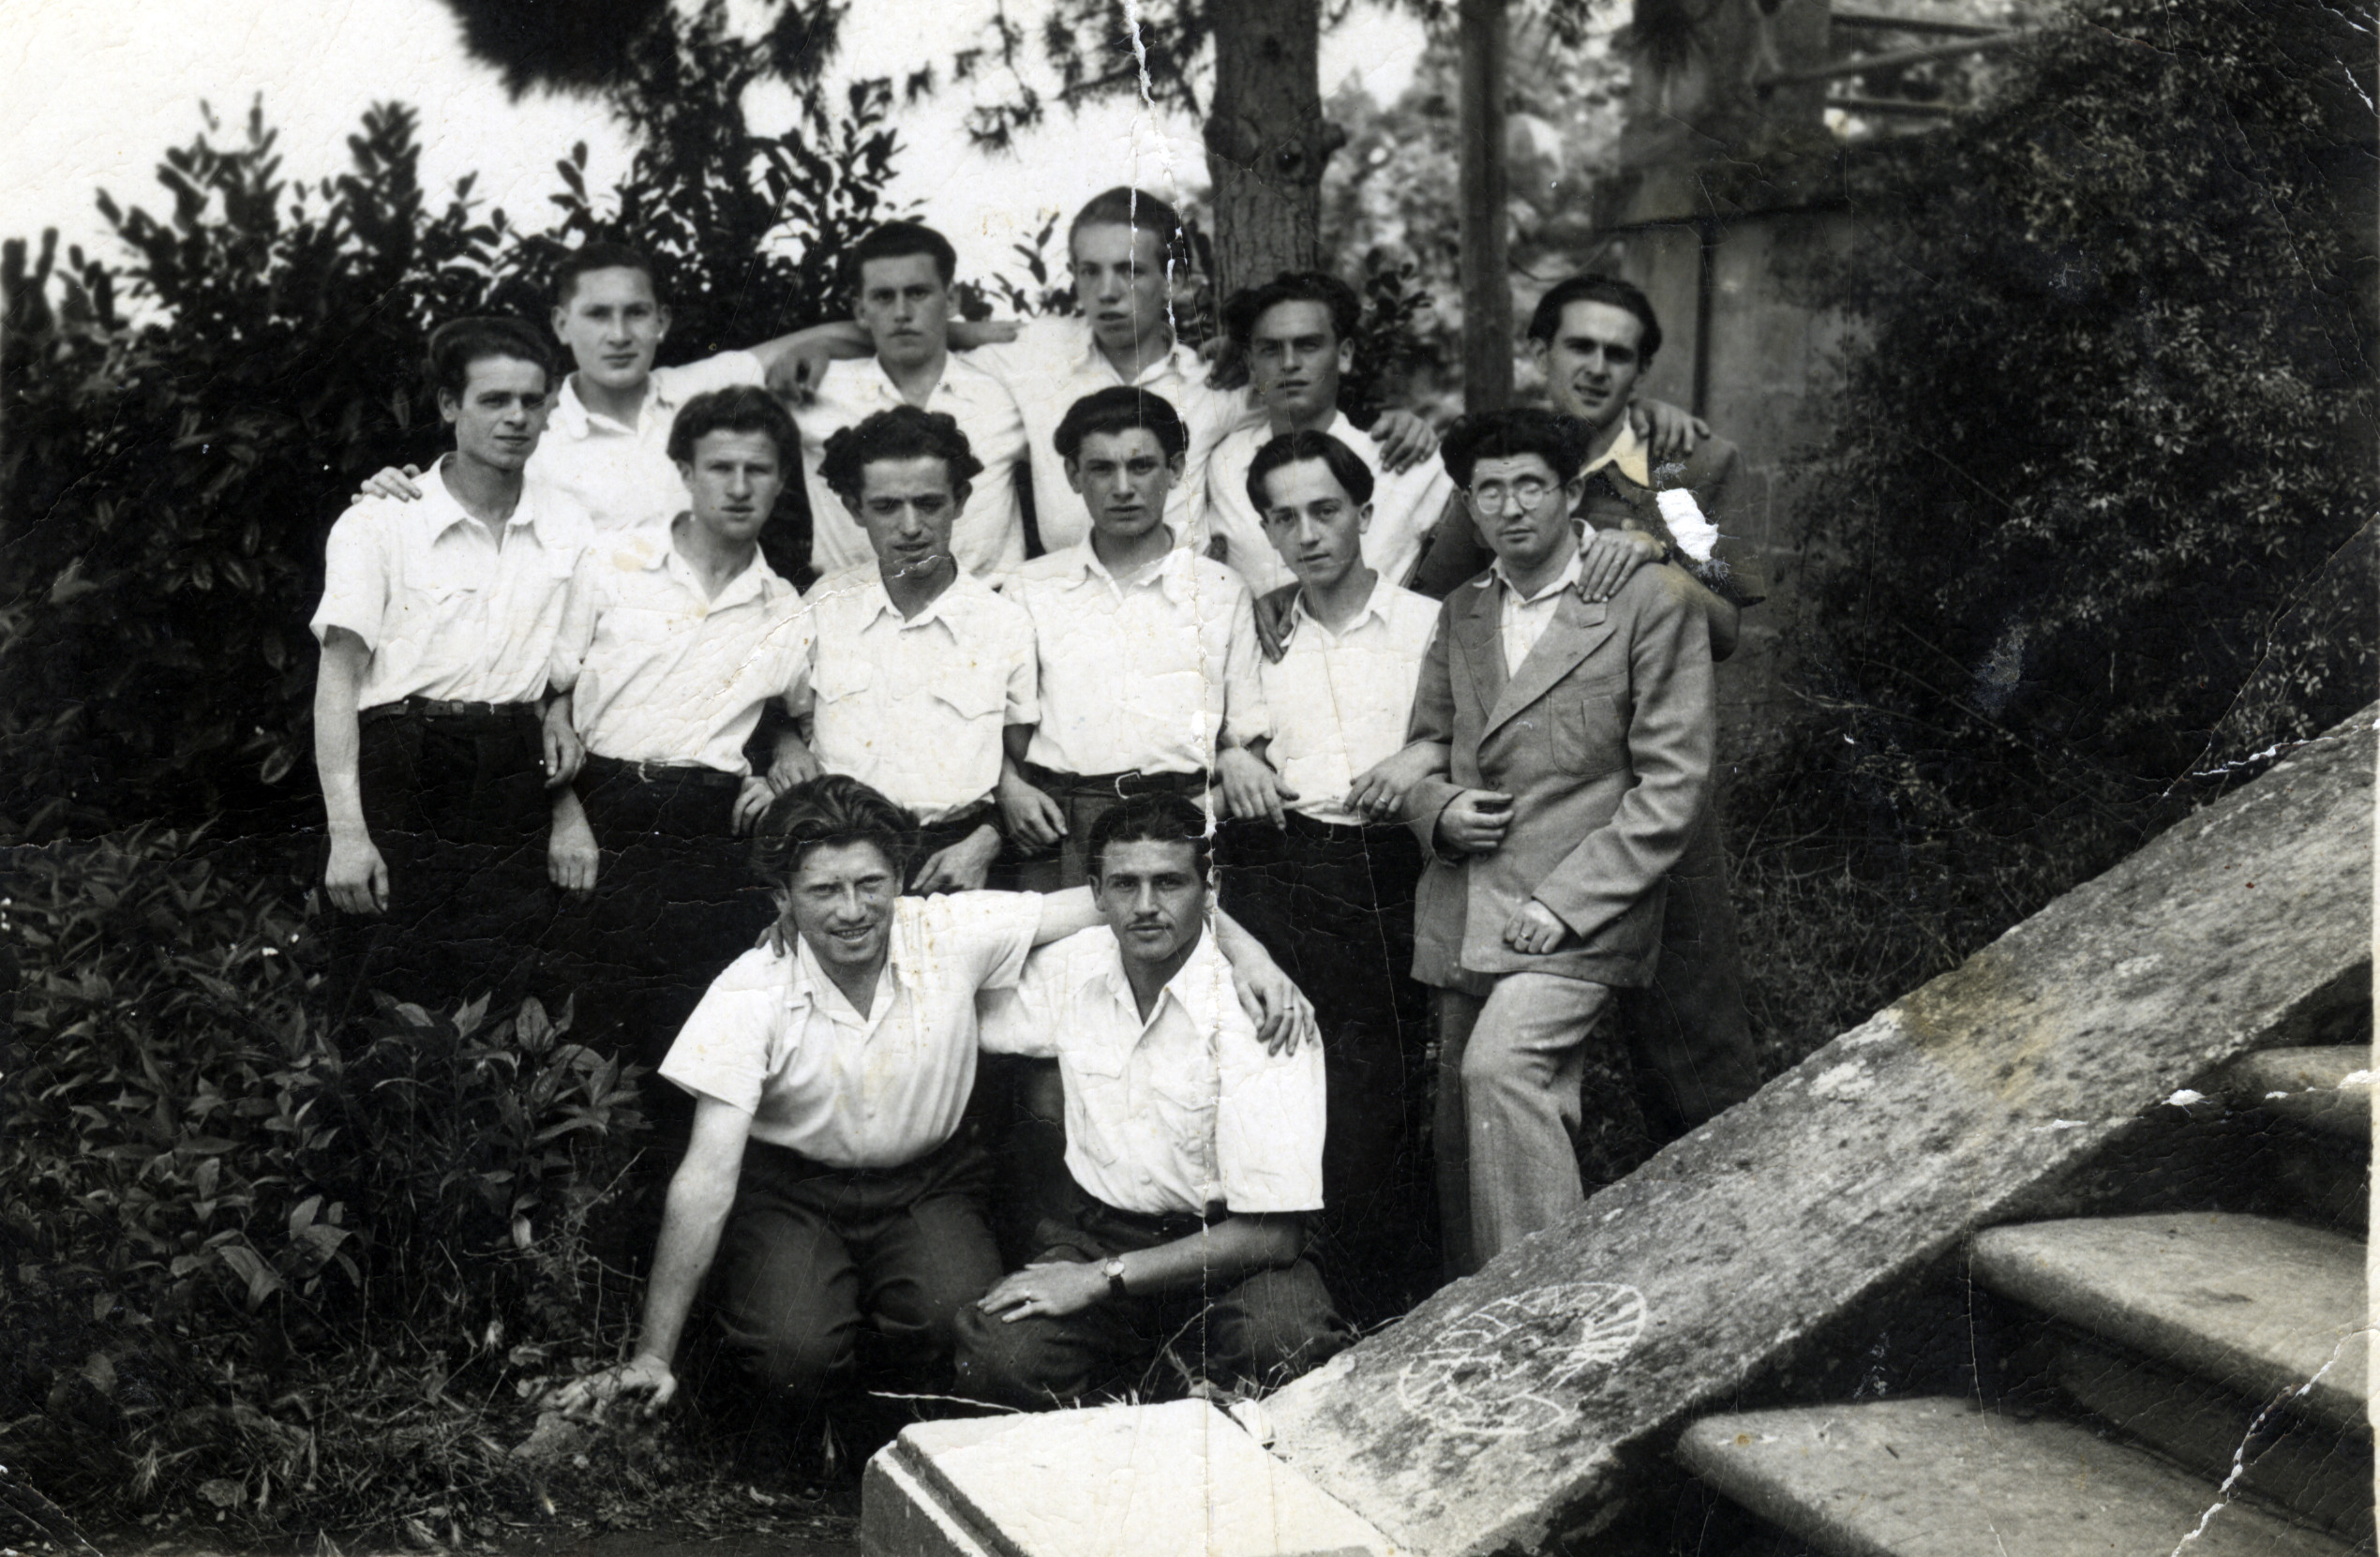 Group photograph of young people at Villa Panti in Soriano Nel Cimino, Italy.   Among those pictured is Joseph Fruchter (second row, third from right).